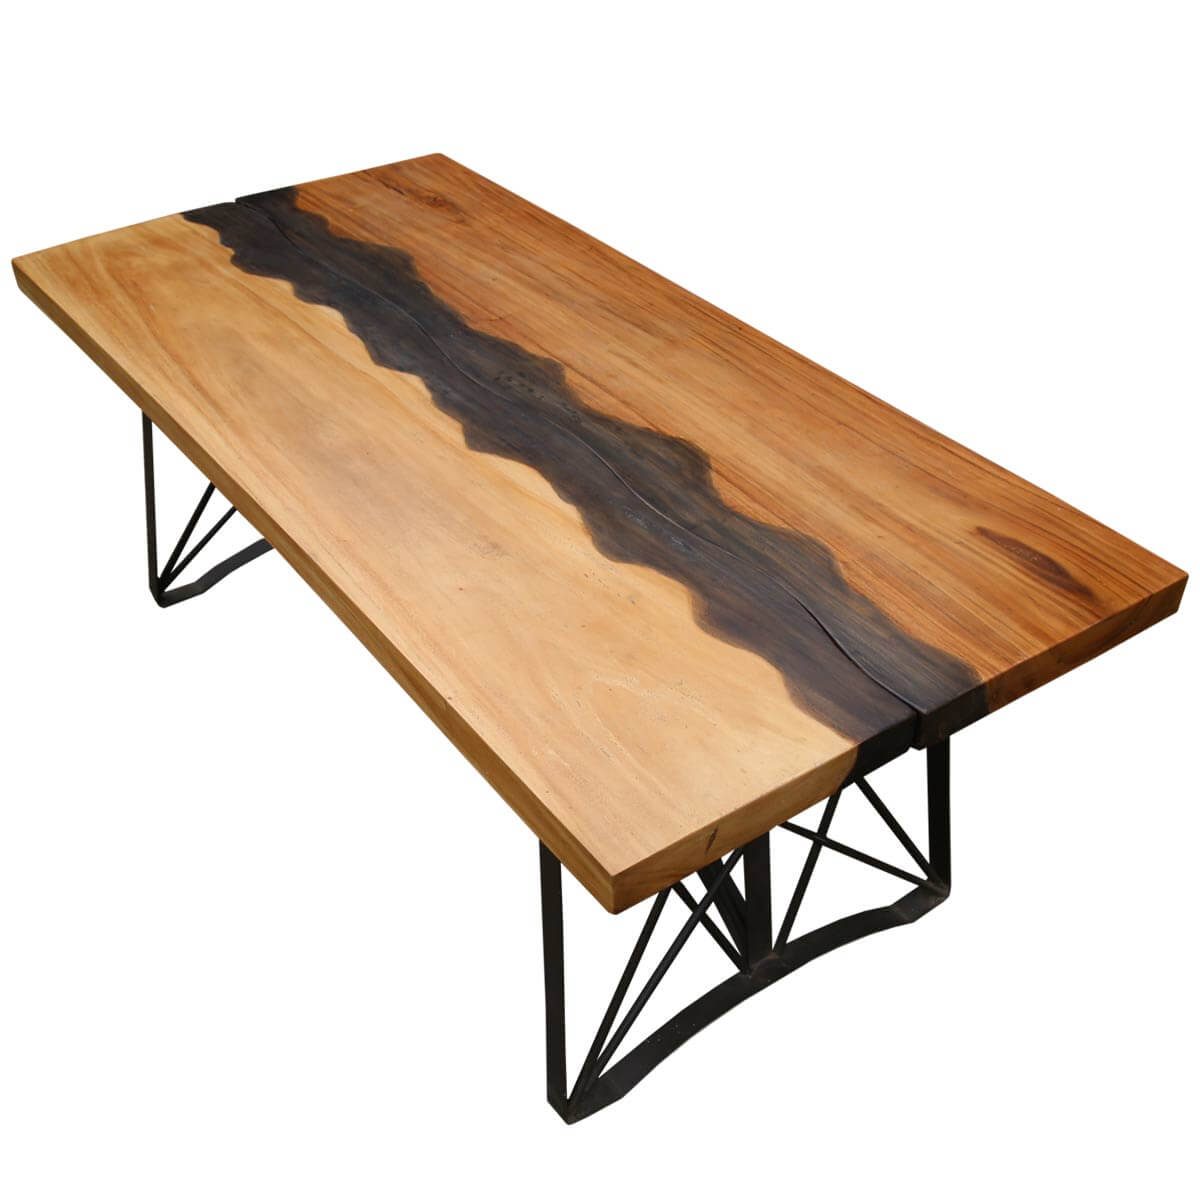 Torrance Iron Base Live Edge Large Industrial Dining Table : 8944 from www.sierralivingconcepts.com size 1200 x 1200 jpeg 81kB